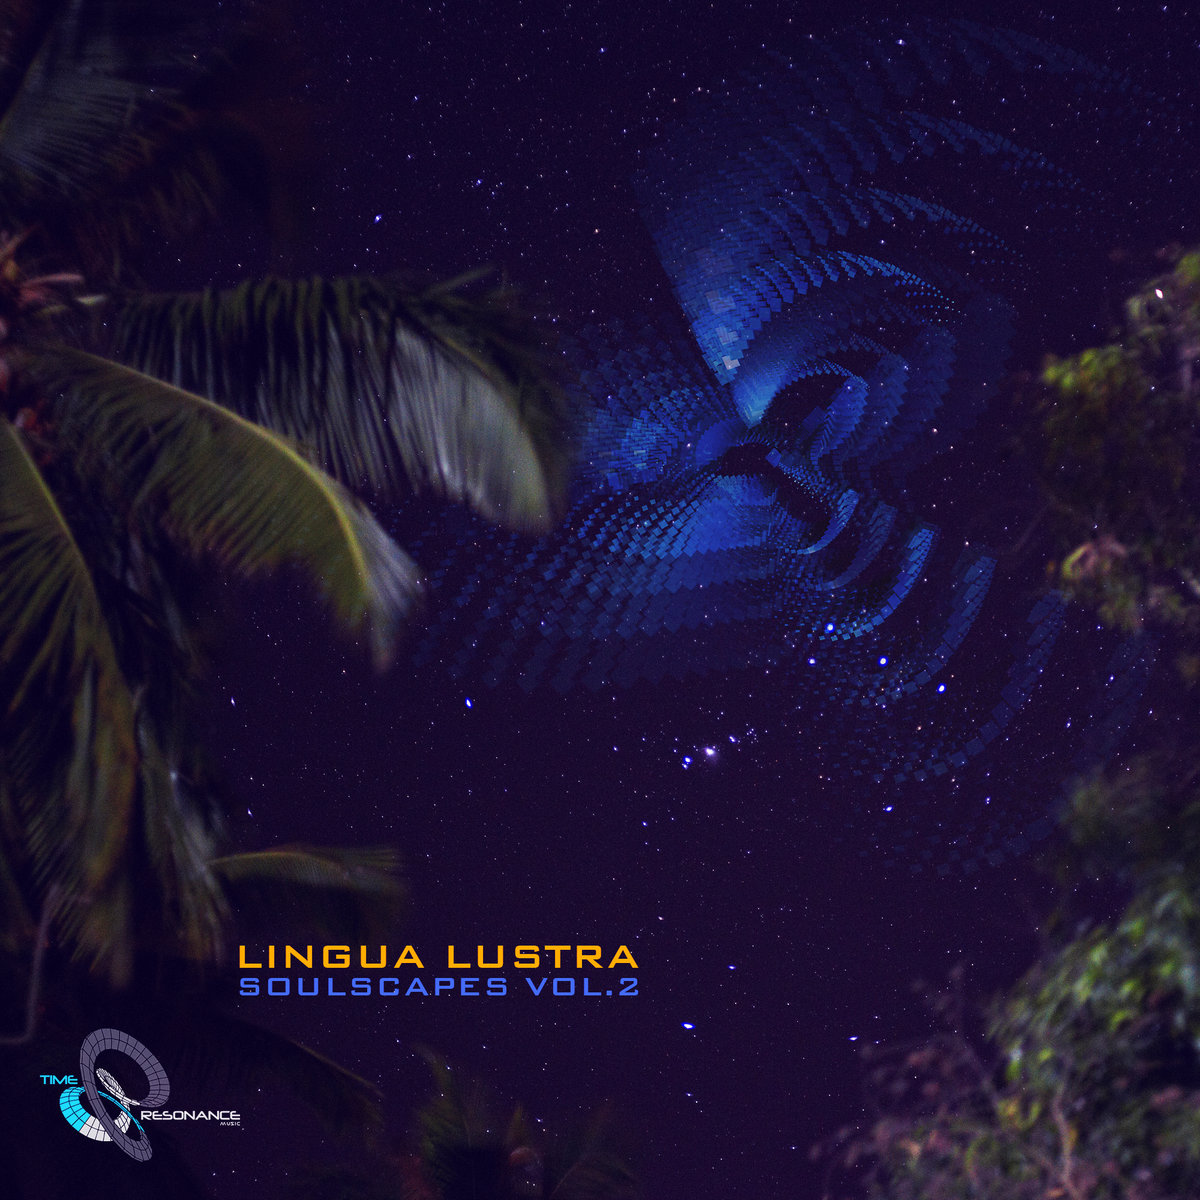 Lingua Lustra - Soulscapes vol.2